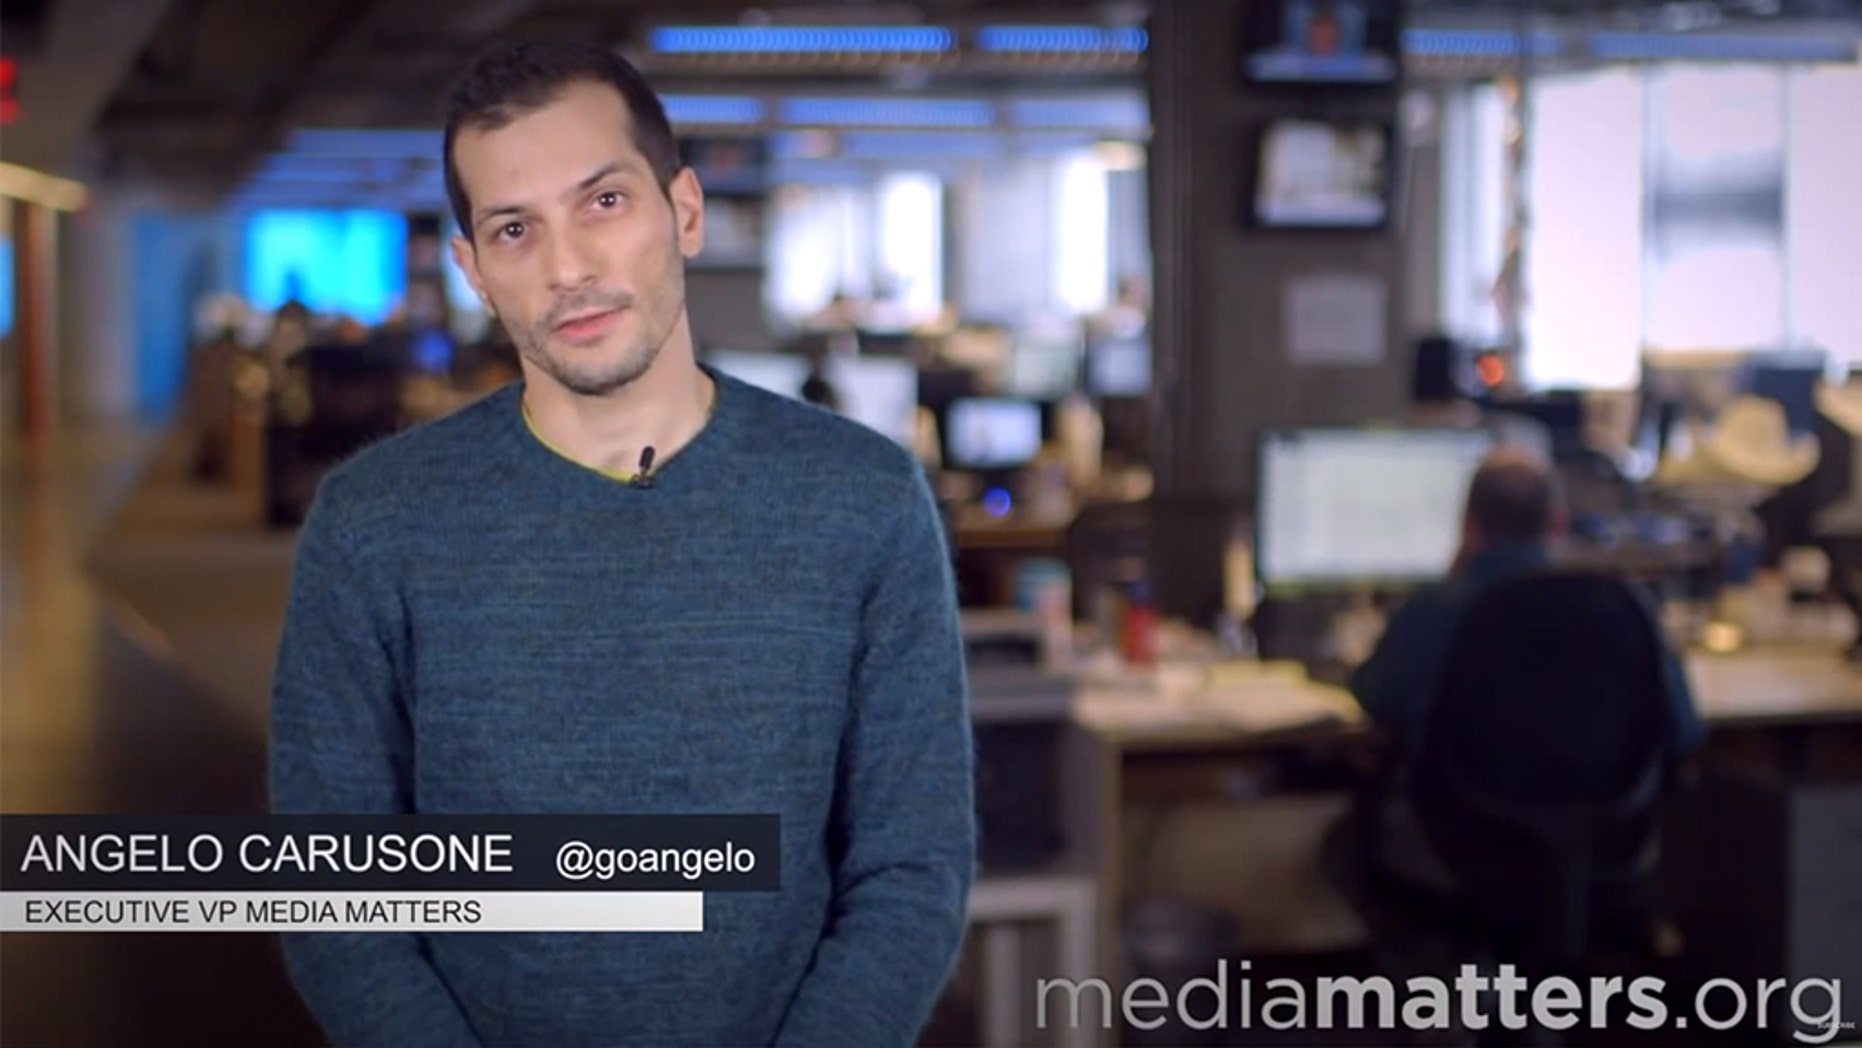 Media Matters President Angelo Carusone allegedly made insensitive comments on his pre-fame blog.